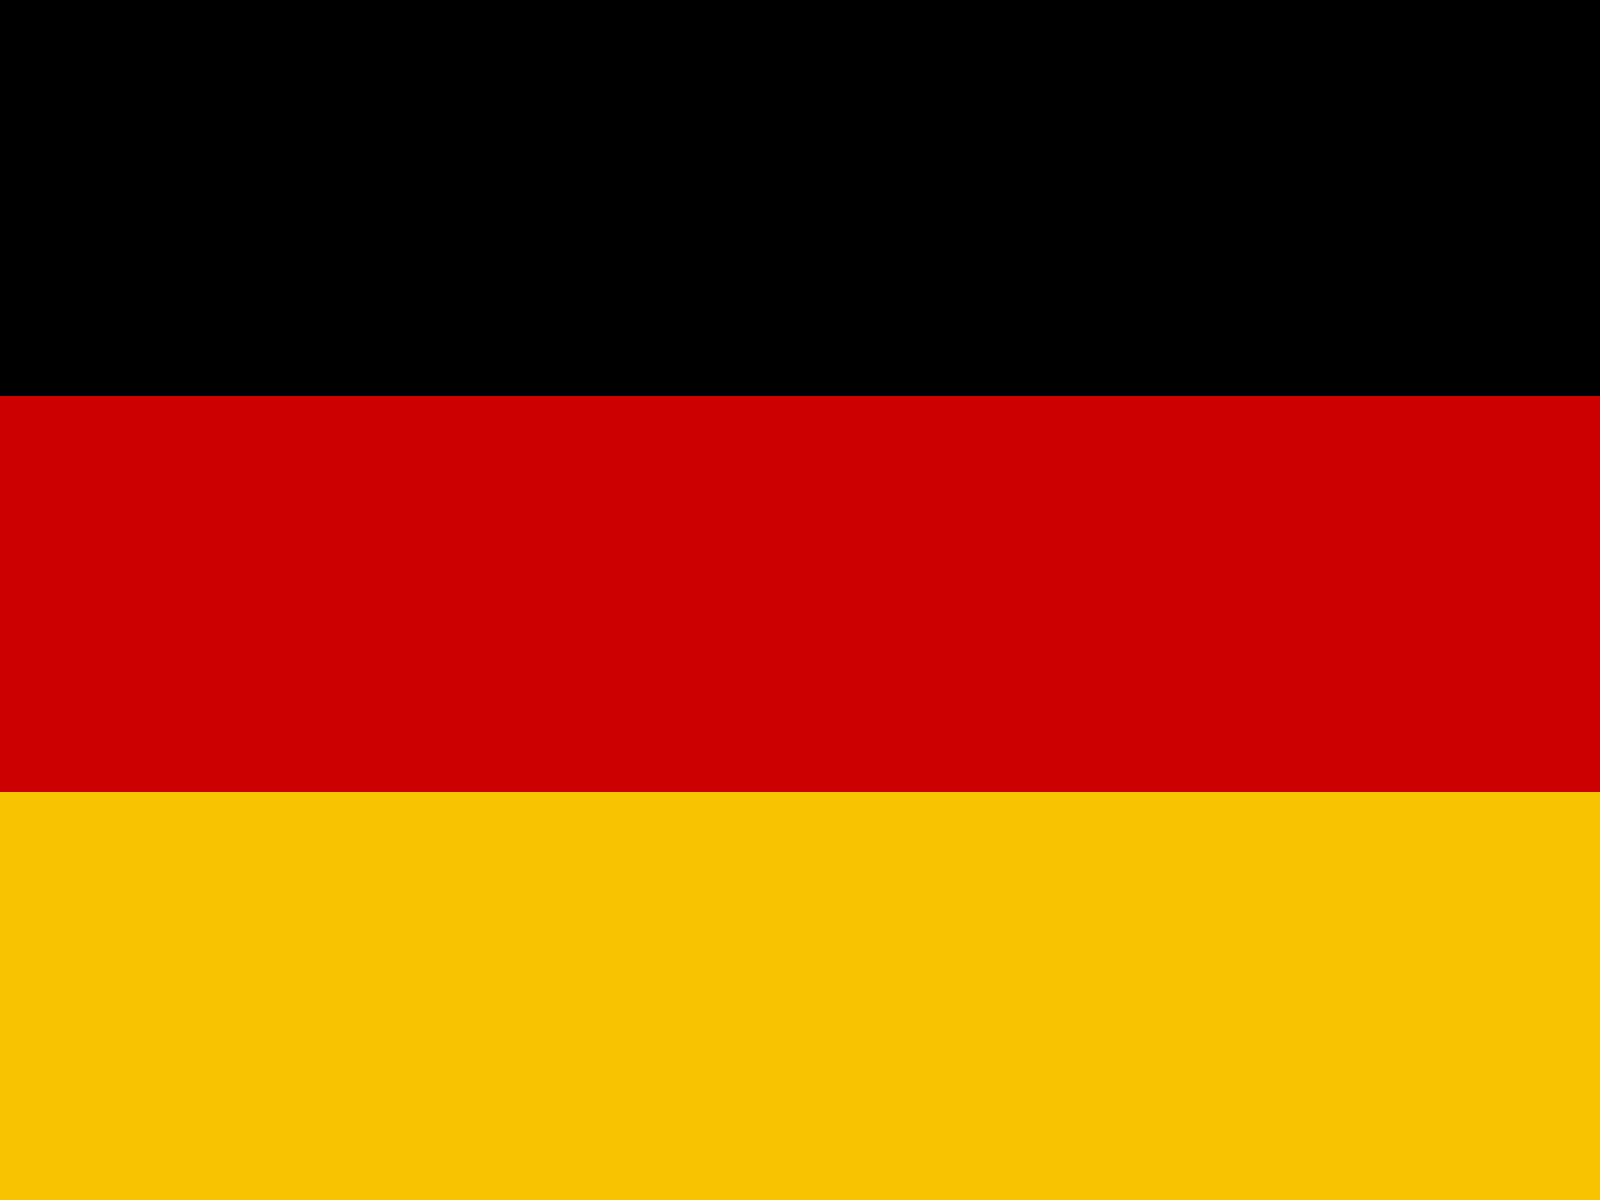 deutschland flagge wallpaper